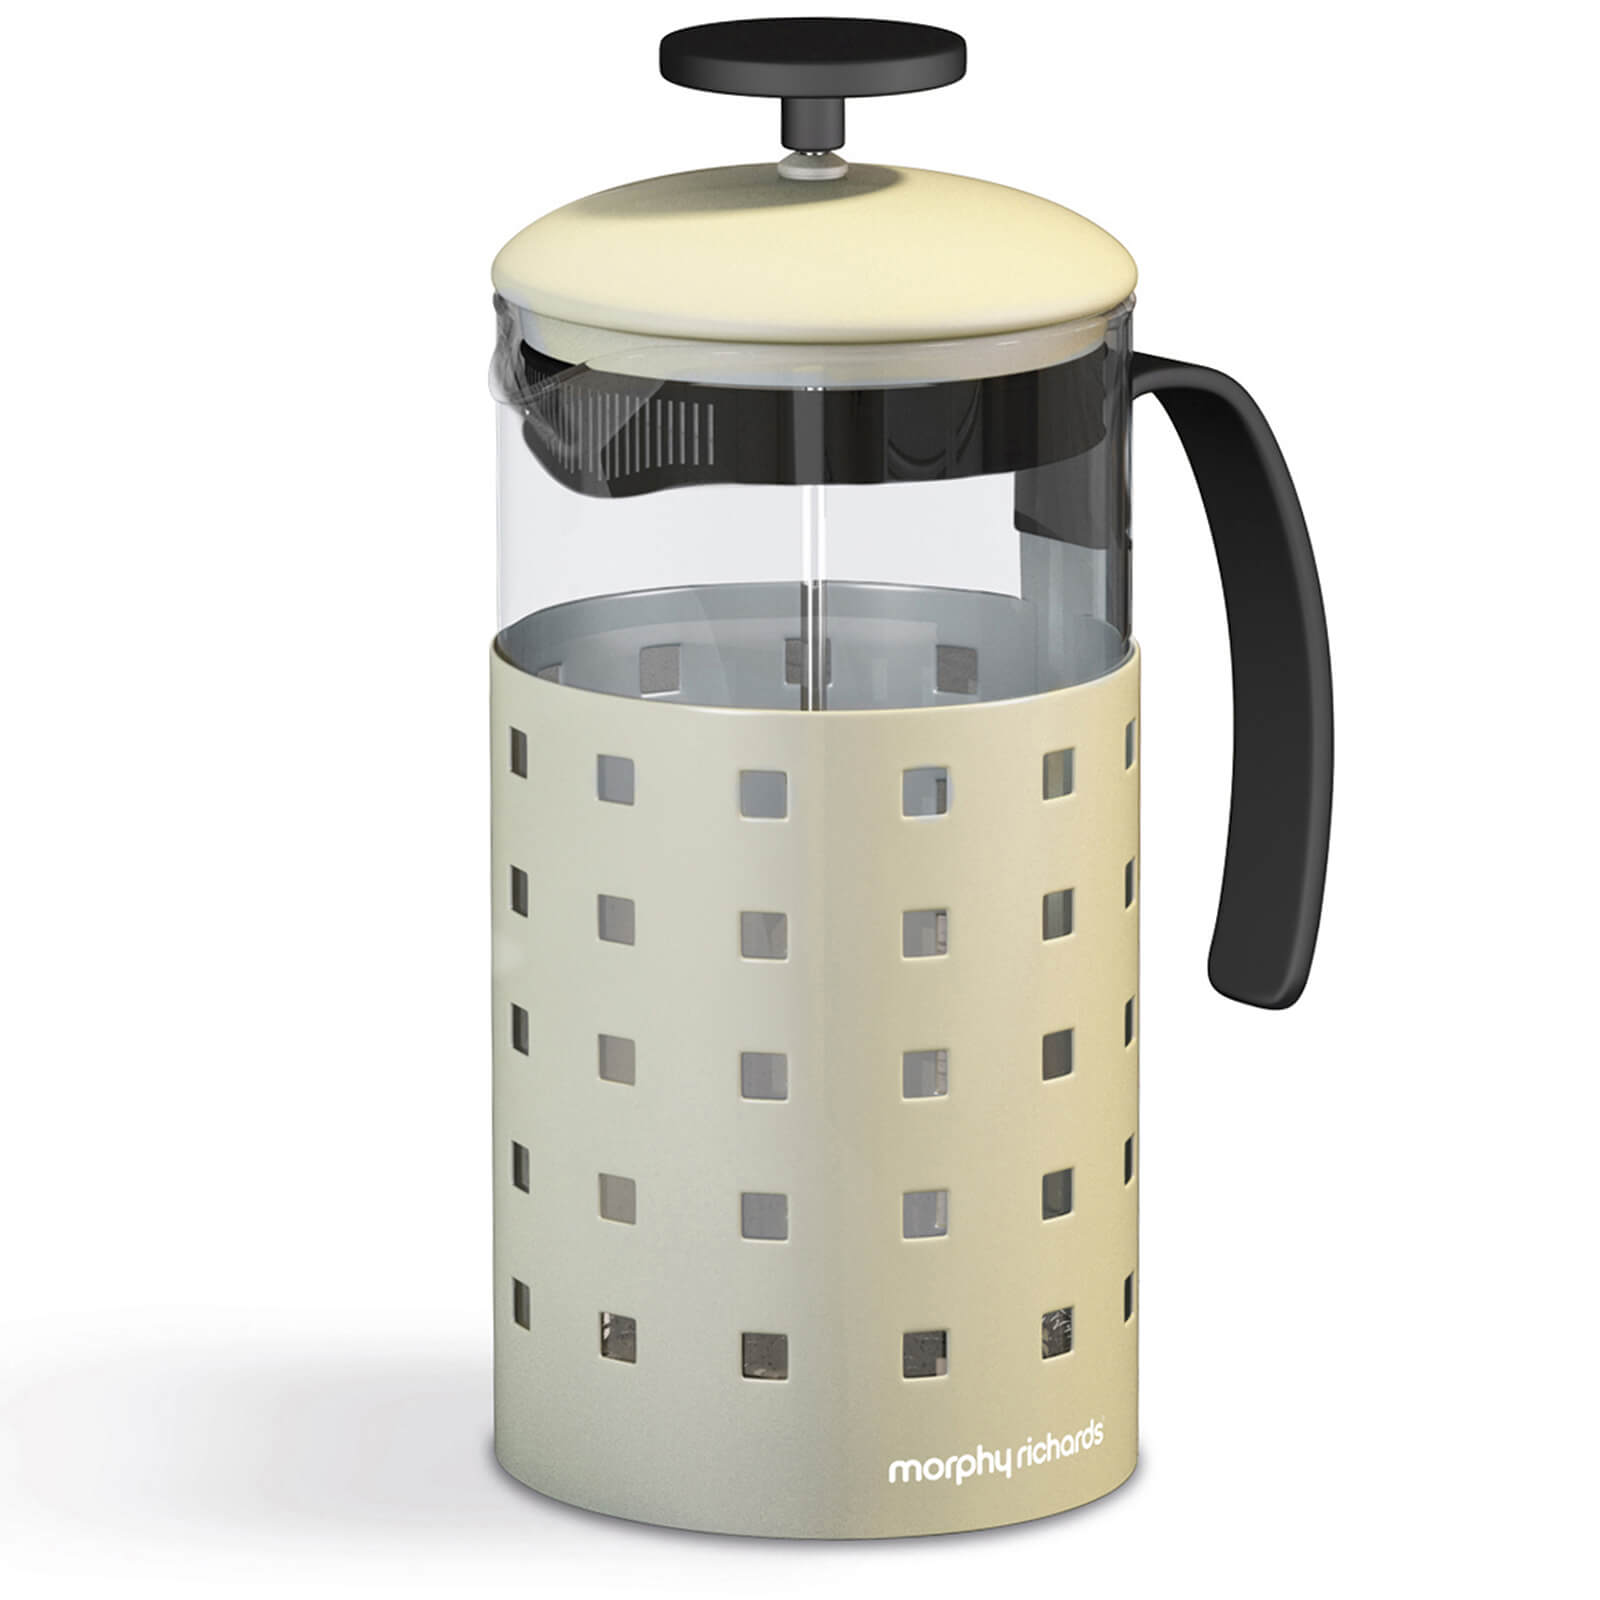 Morphy Richards 46192 8 Cup Cafetiere - Cream - 1000ml